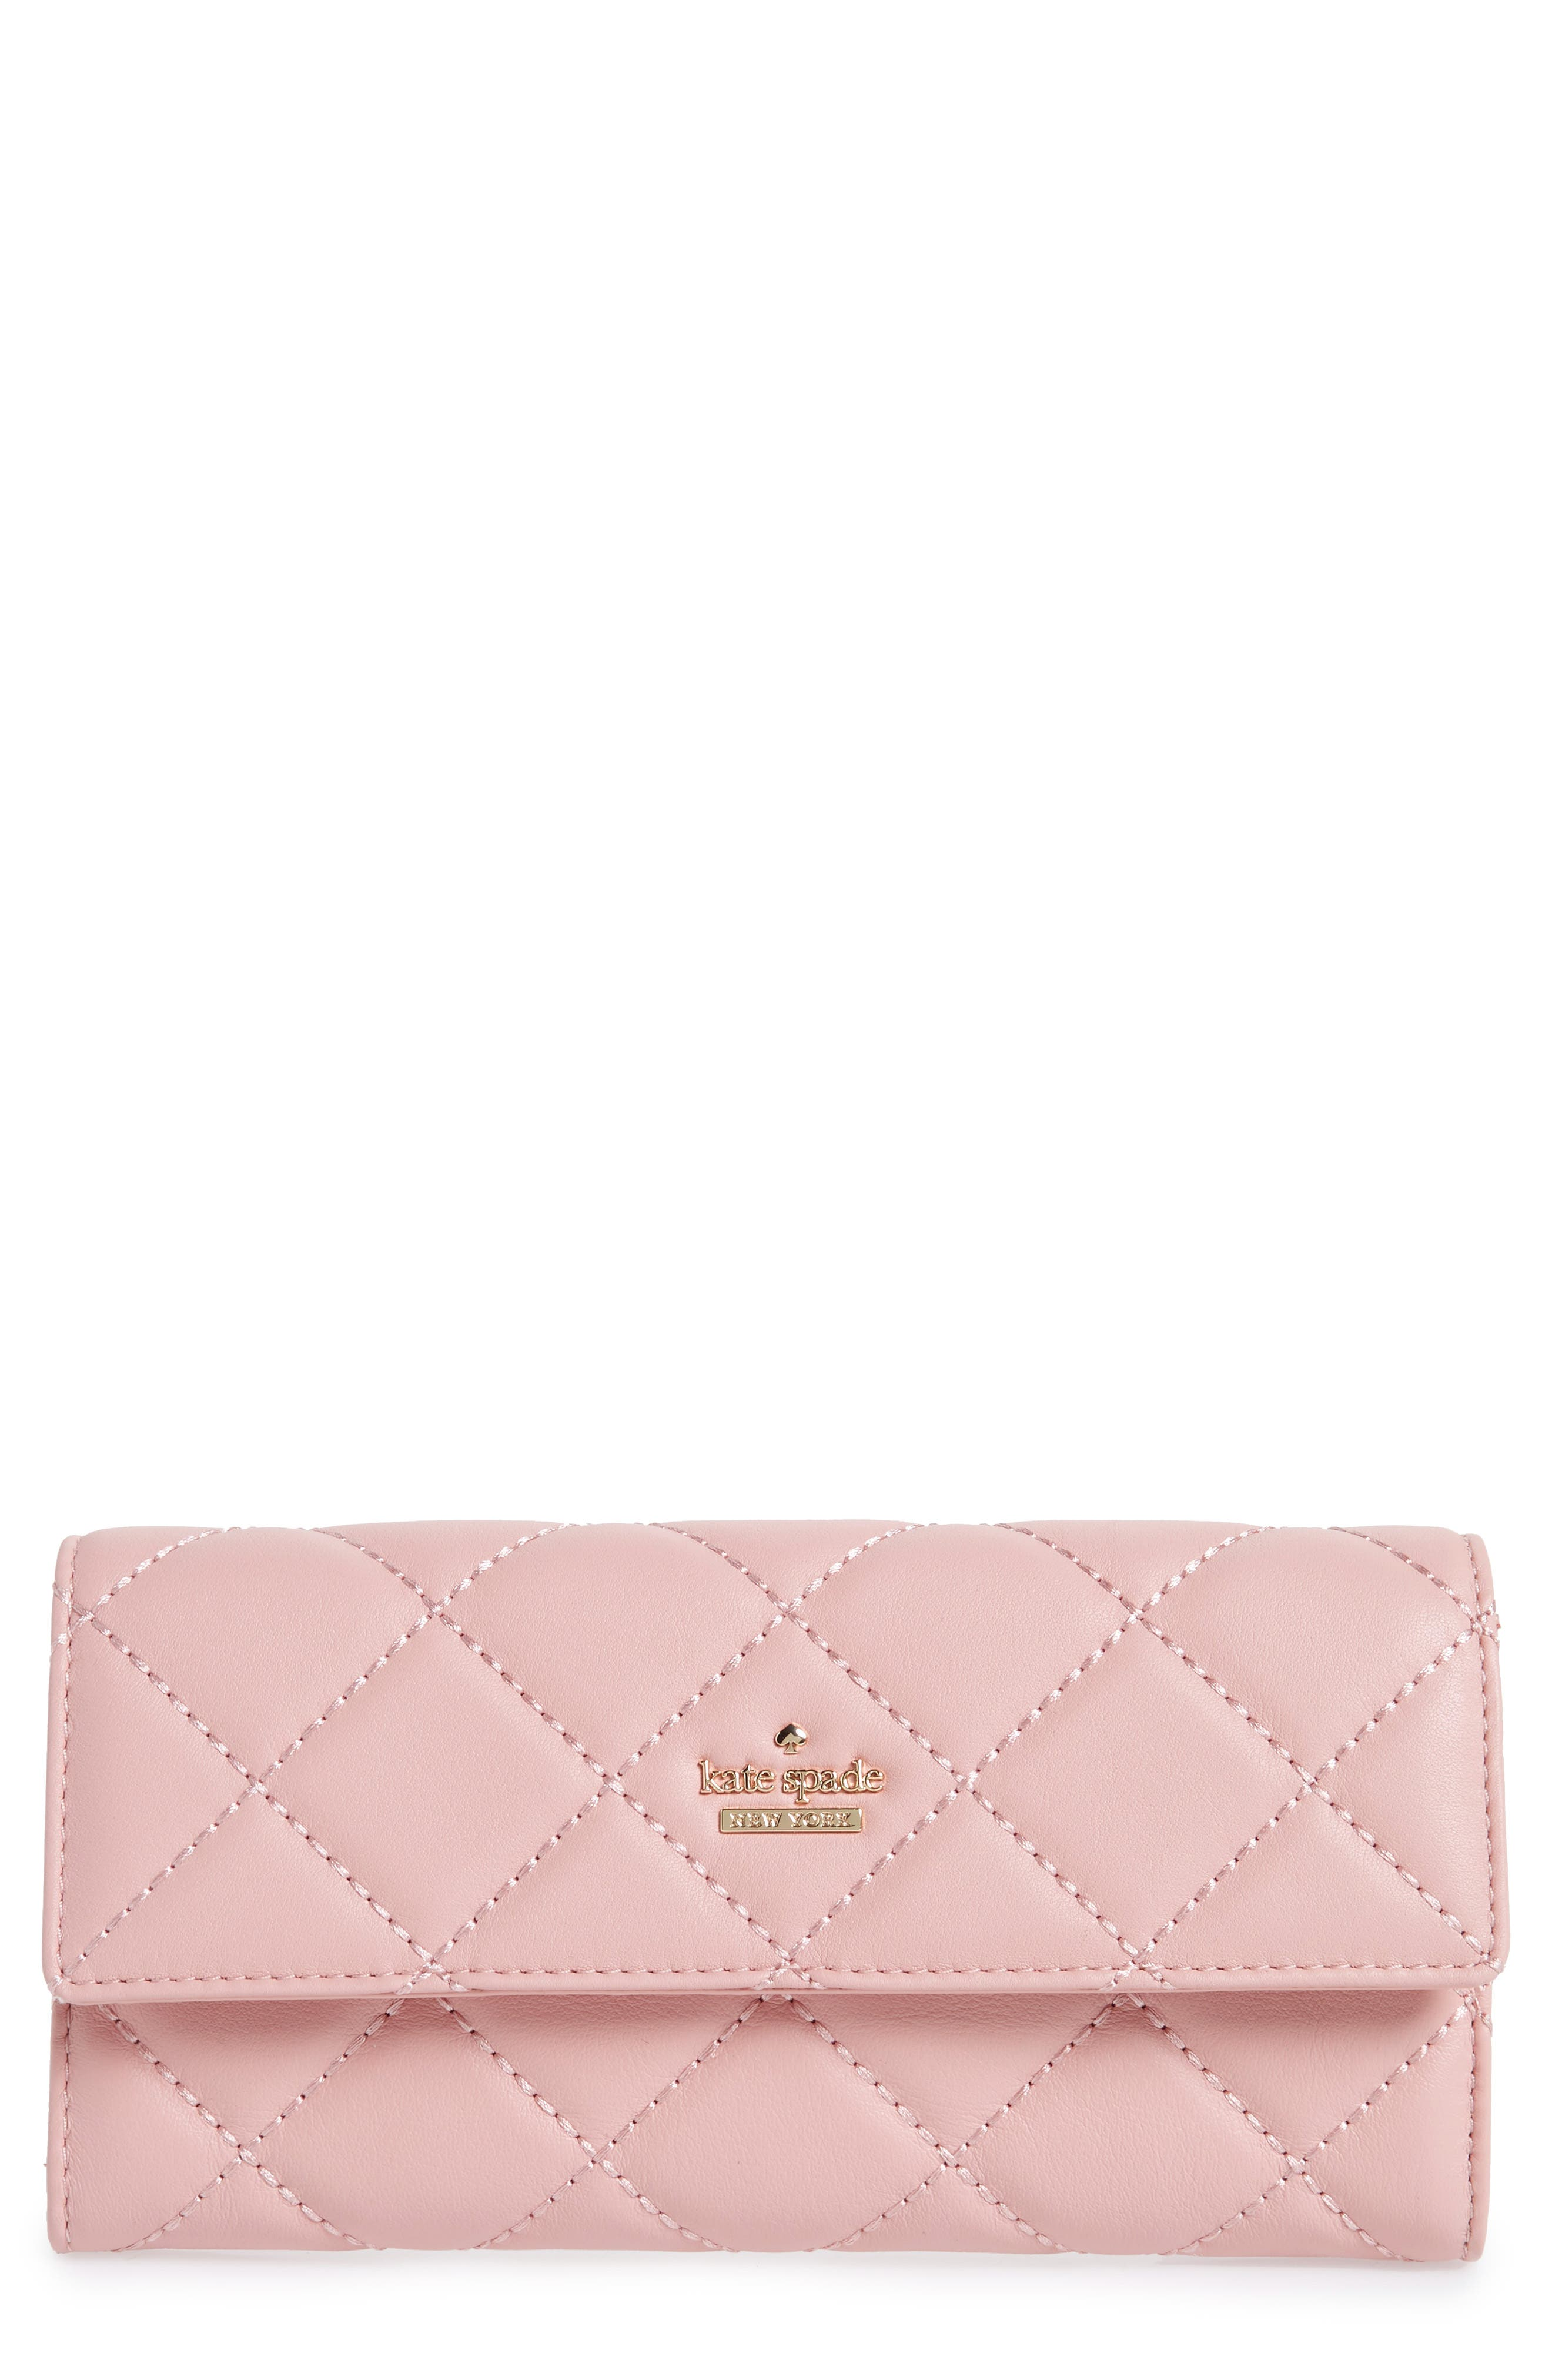 emerson place - kinsley quilted leather wallet,                             Main thumbnail 1, color,                             Rosy Cheeks